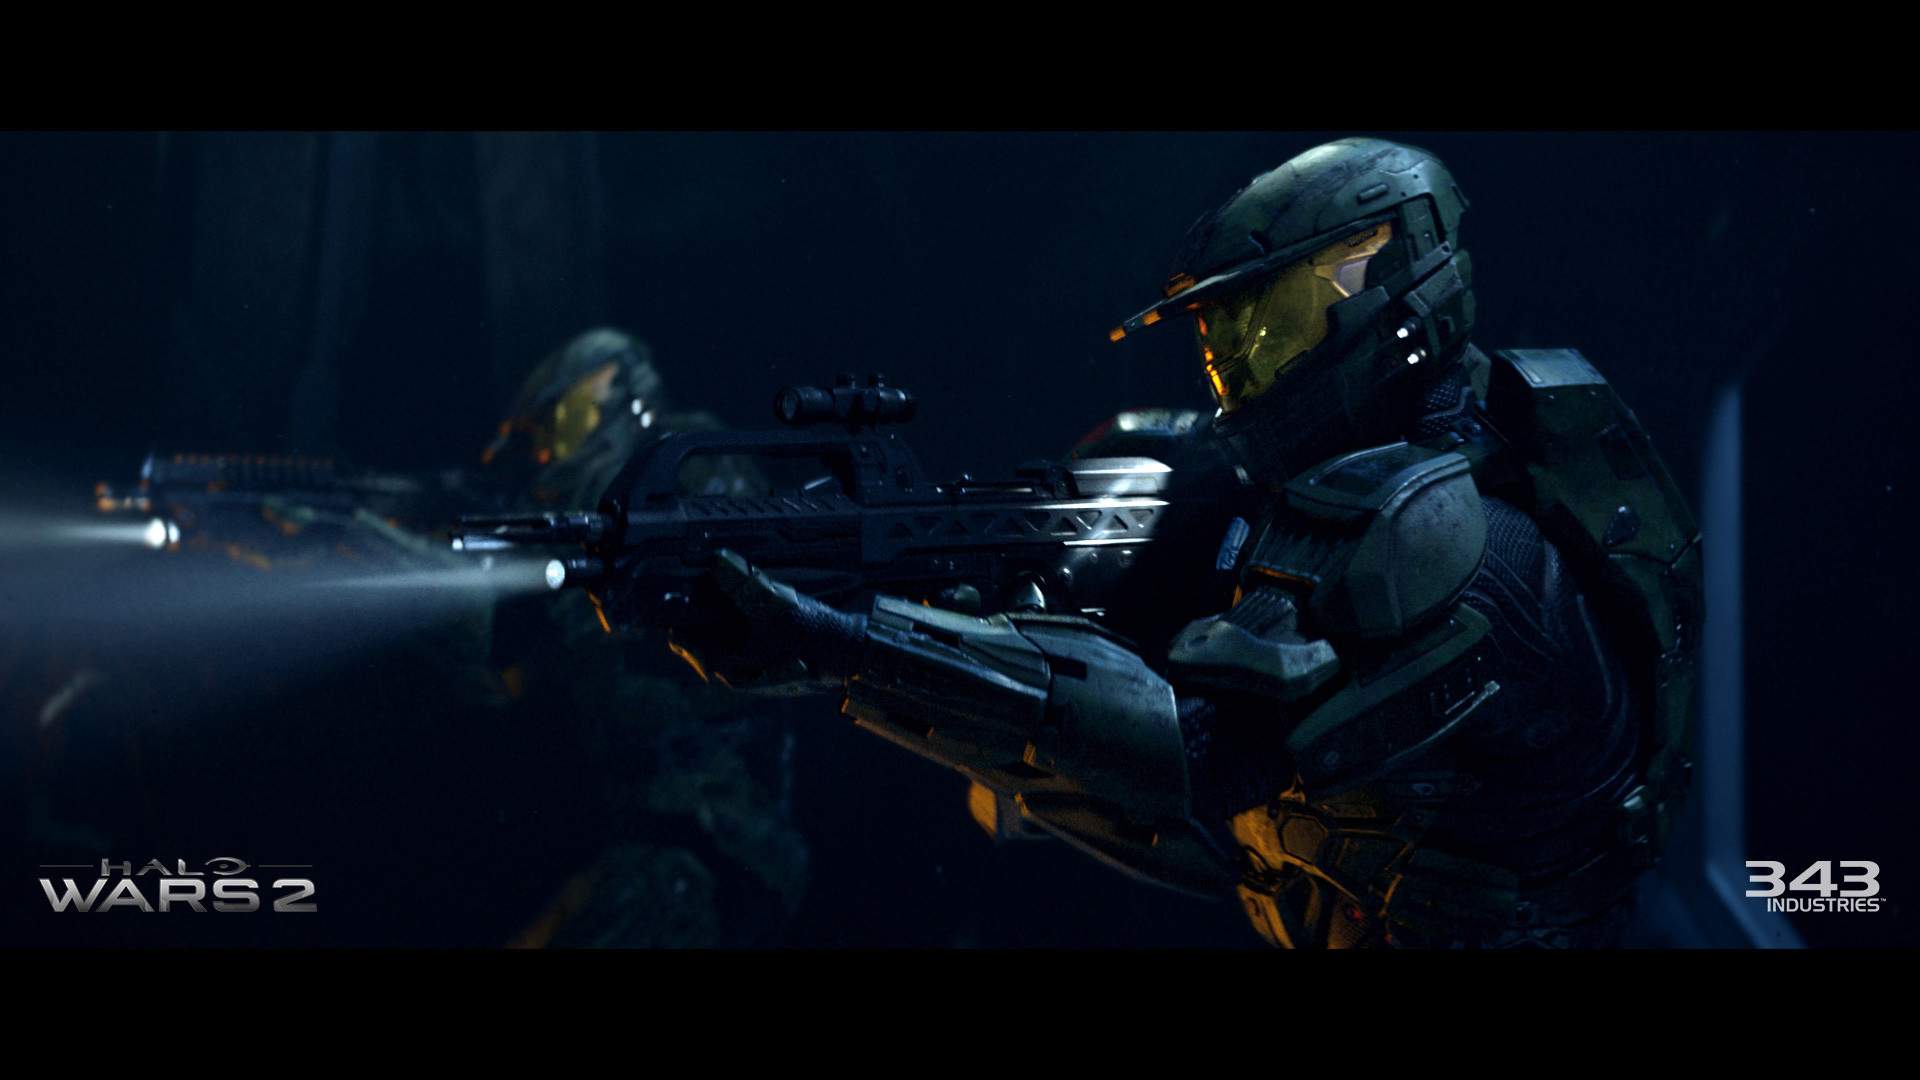 Halo images Halo Wars screenshot HD wallpaper and background .